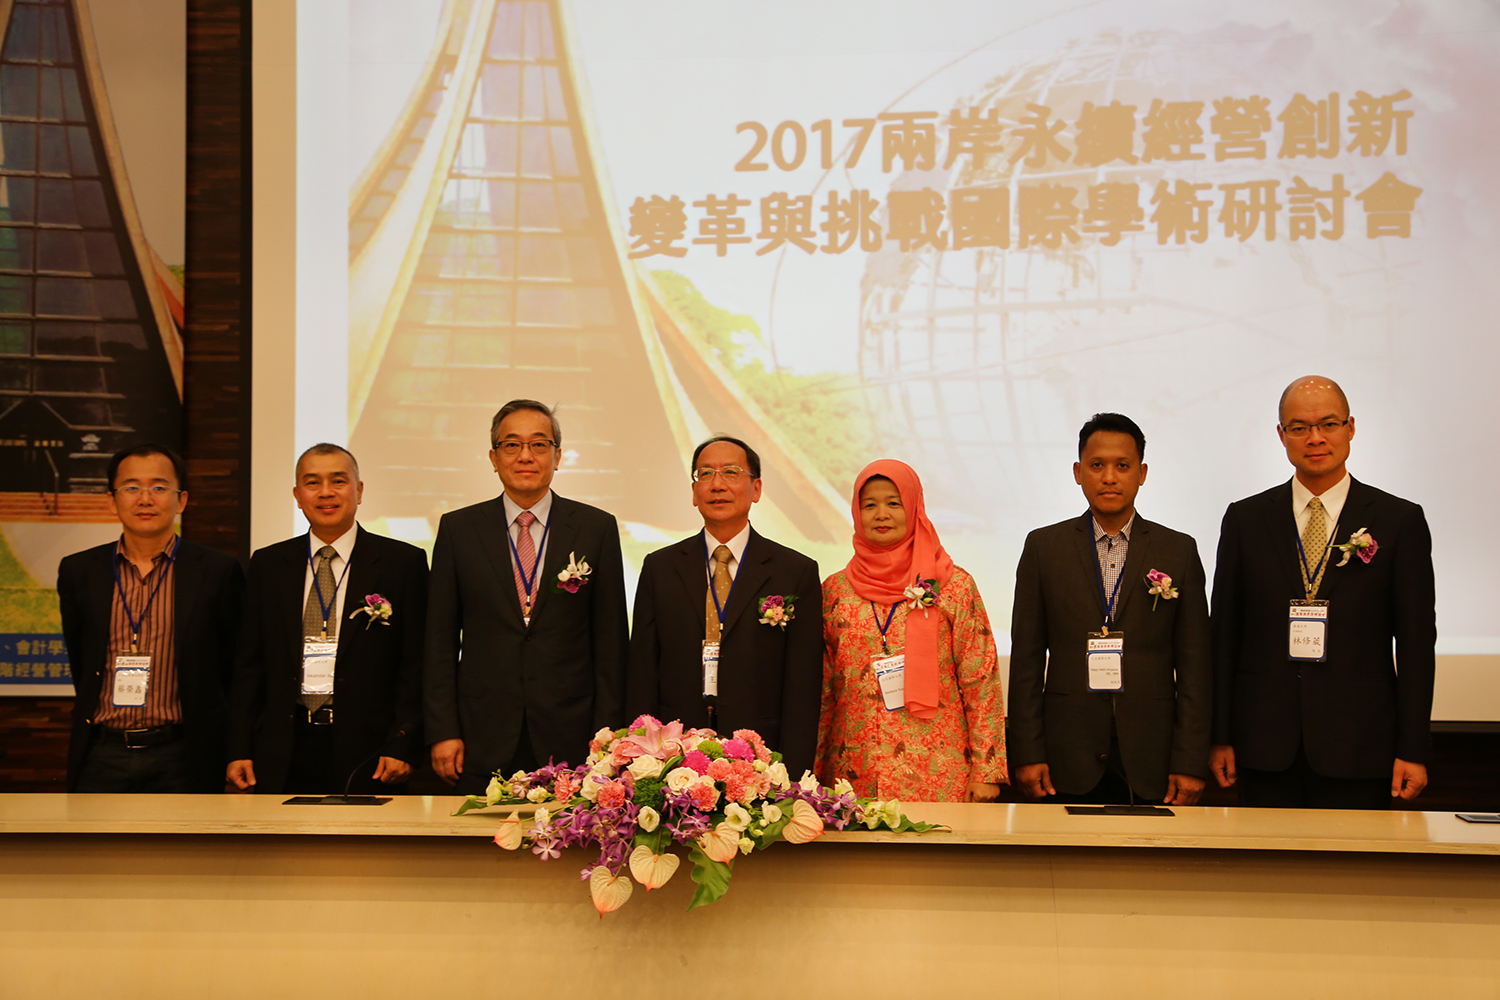 2017 Cross-Straits Sustainable Operation Innovations, Changes, and Challenges Seminar, Tunghai President Mao-Jiun Wang (fourth from right) and VIPs